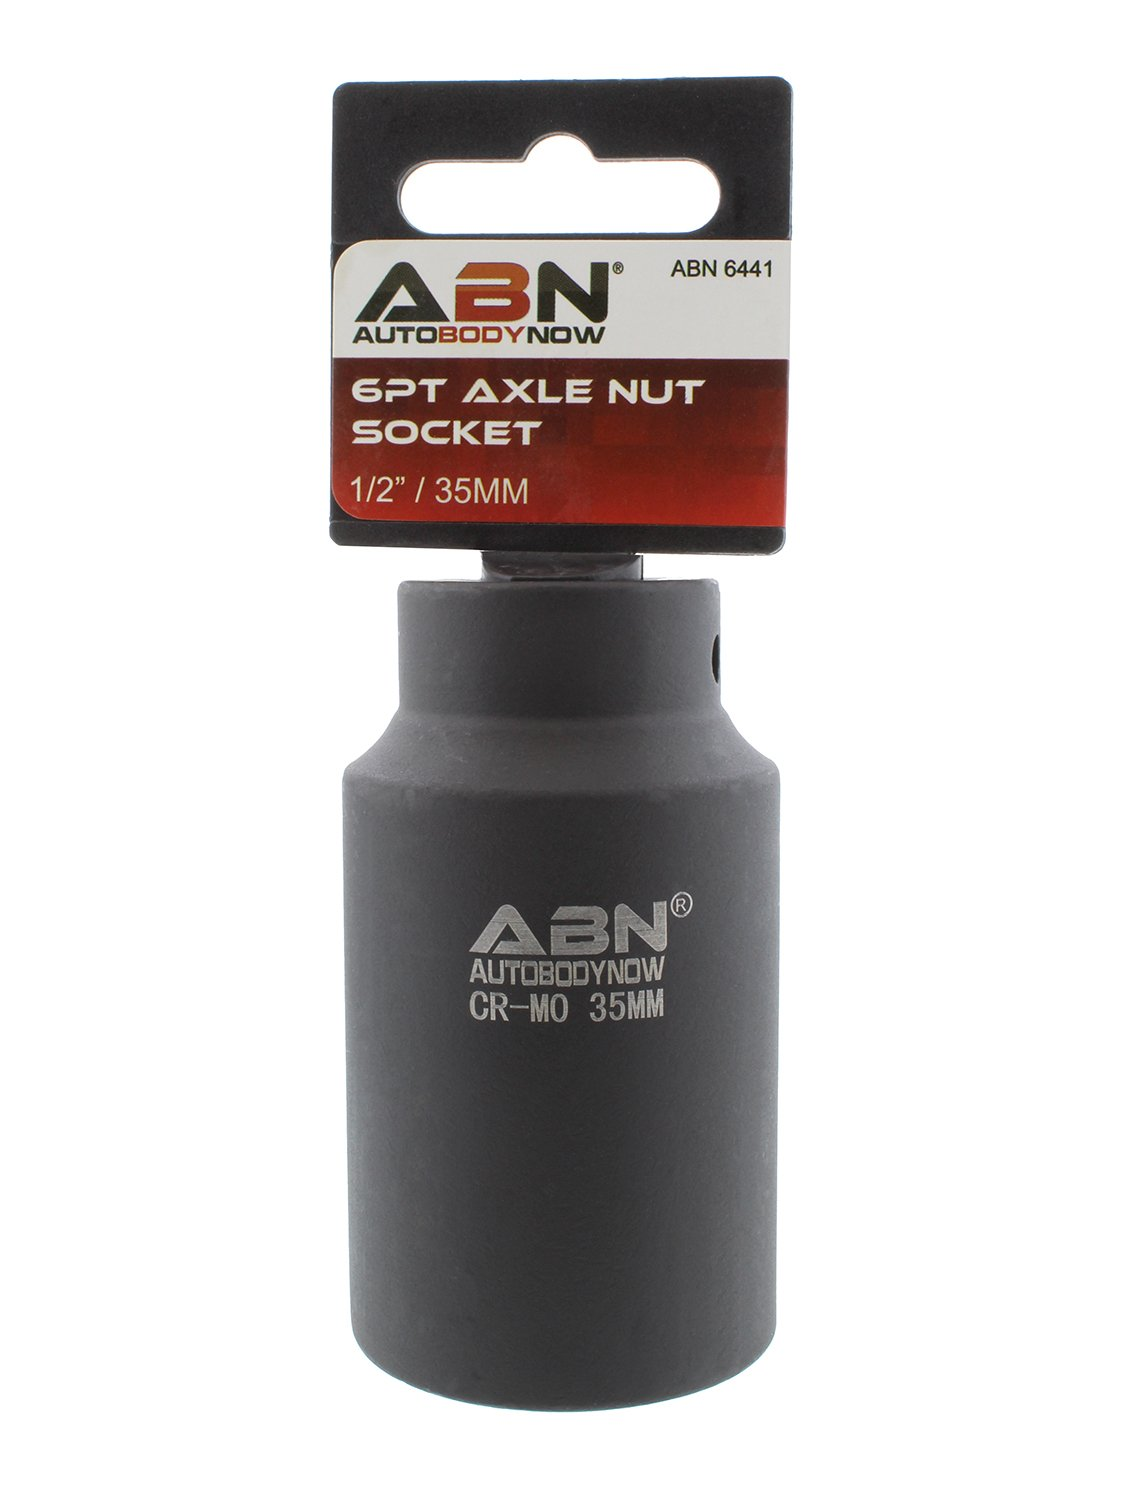 ABN Axle Nut Socket, 35mm, 1/2'' Inch Drive, 6 Point – Universal for All Vehicle 6pt Installation, Removal, Repair